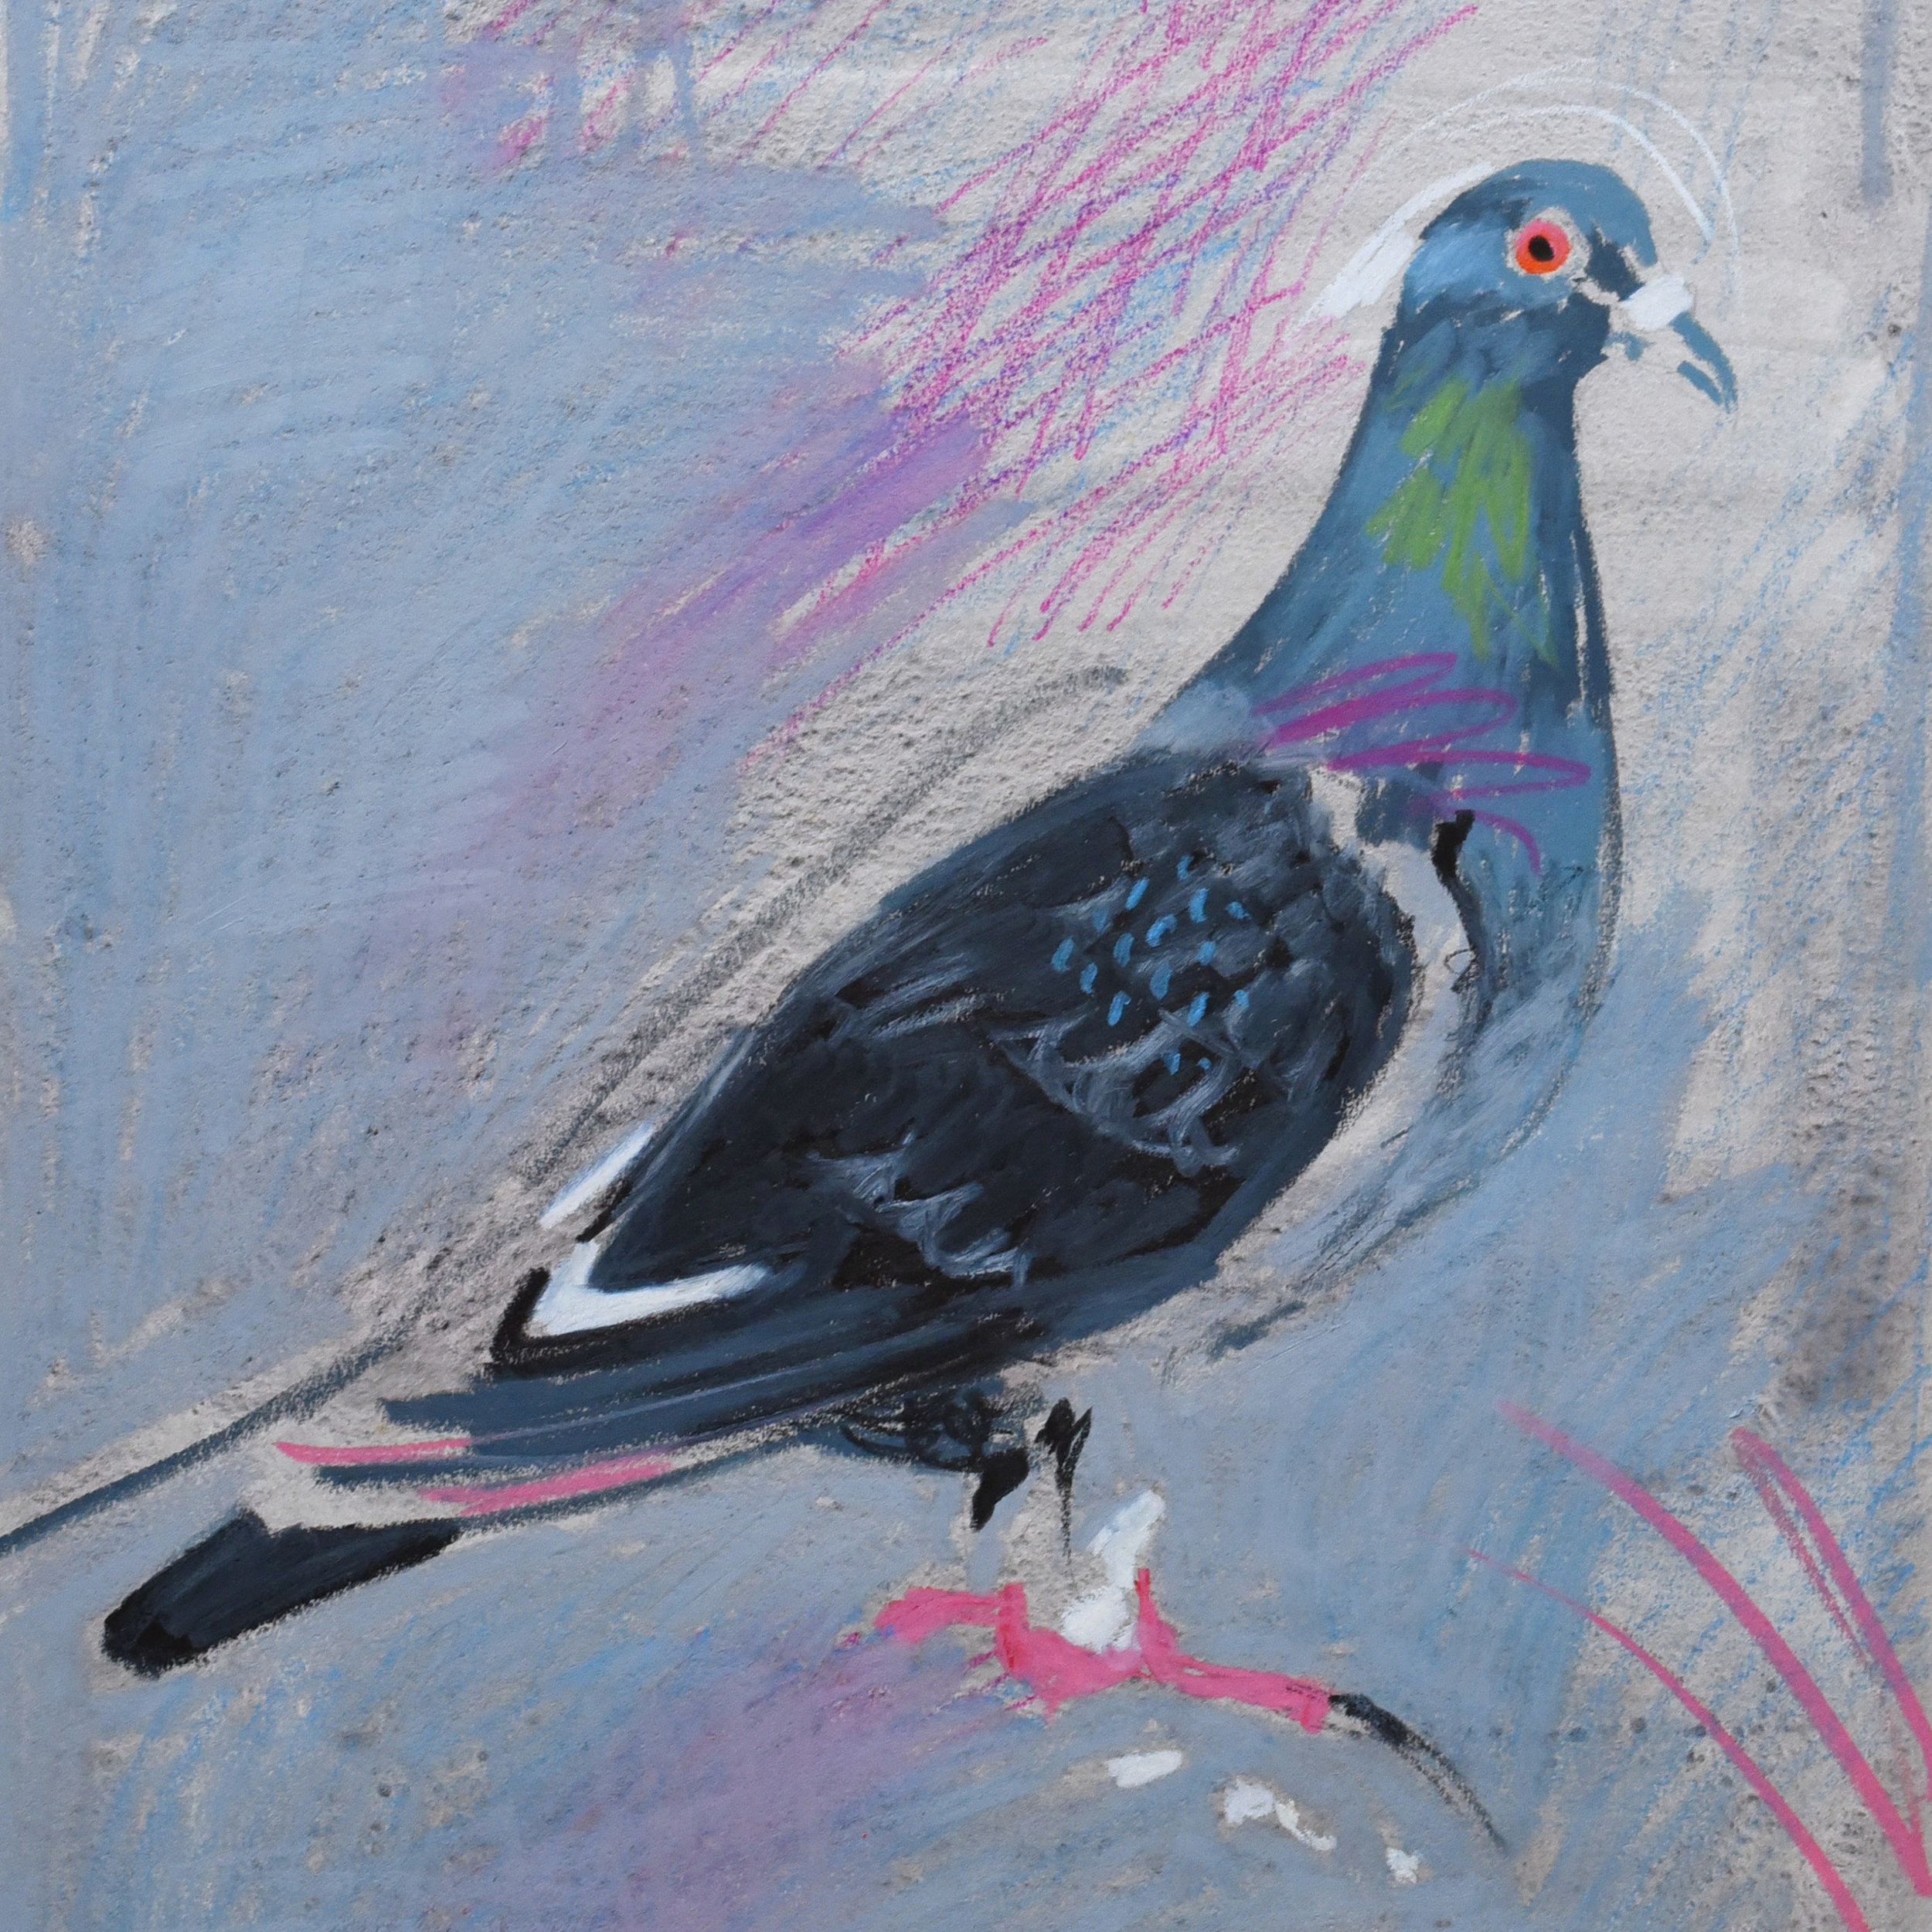 Painting of a pigeon using crayon and acrylic wash on art paper